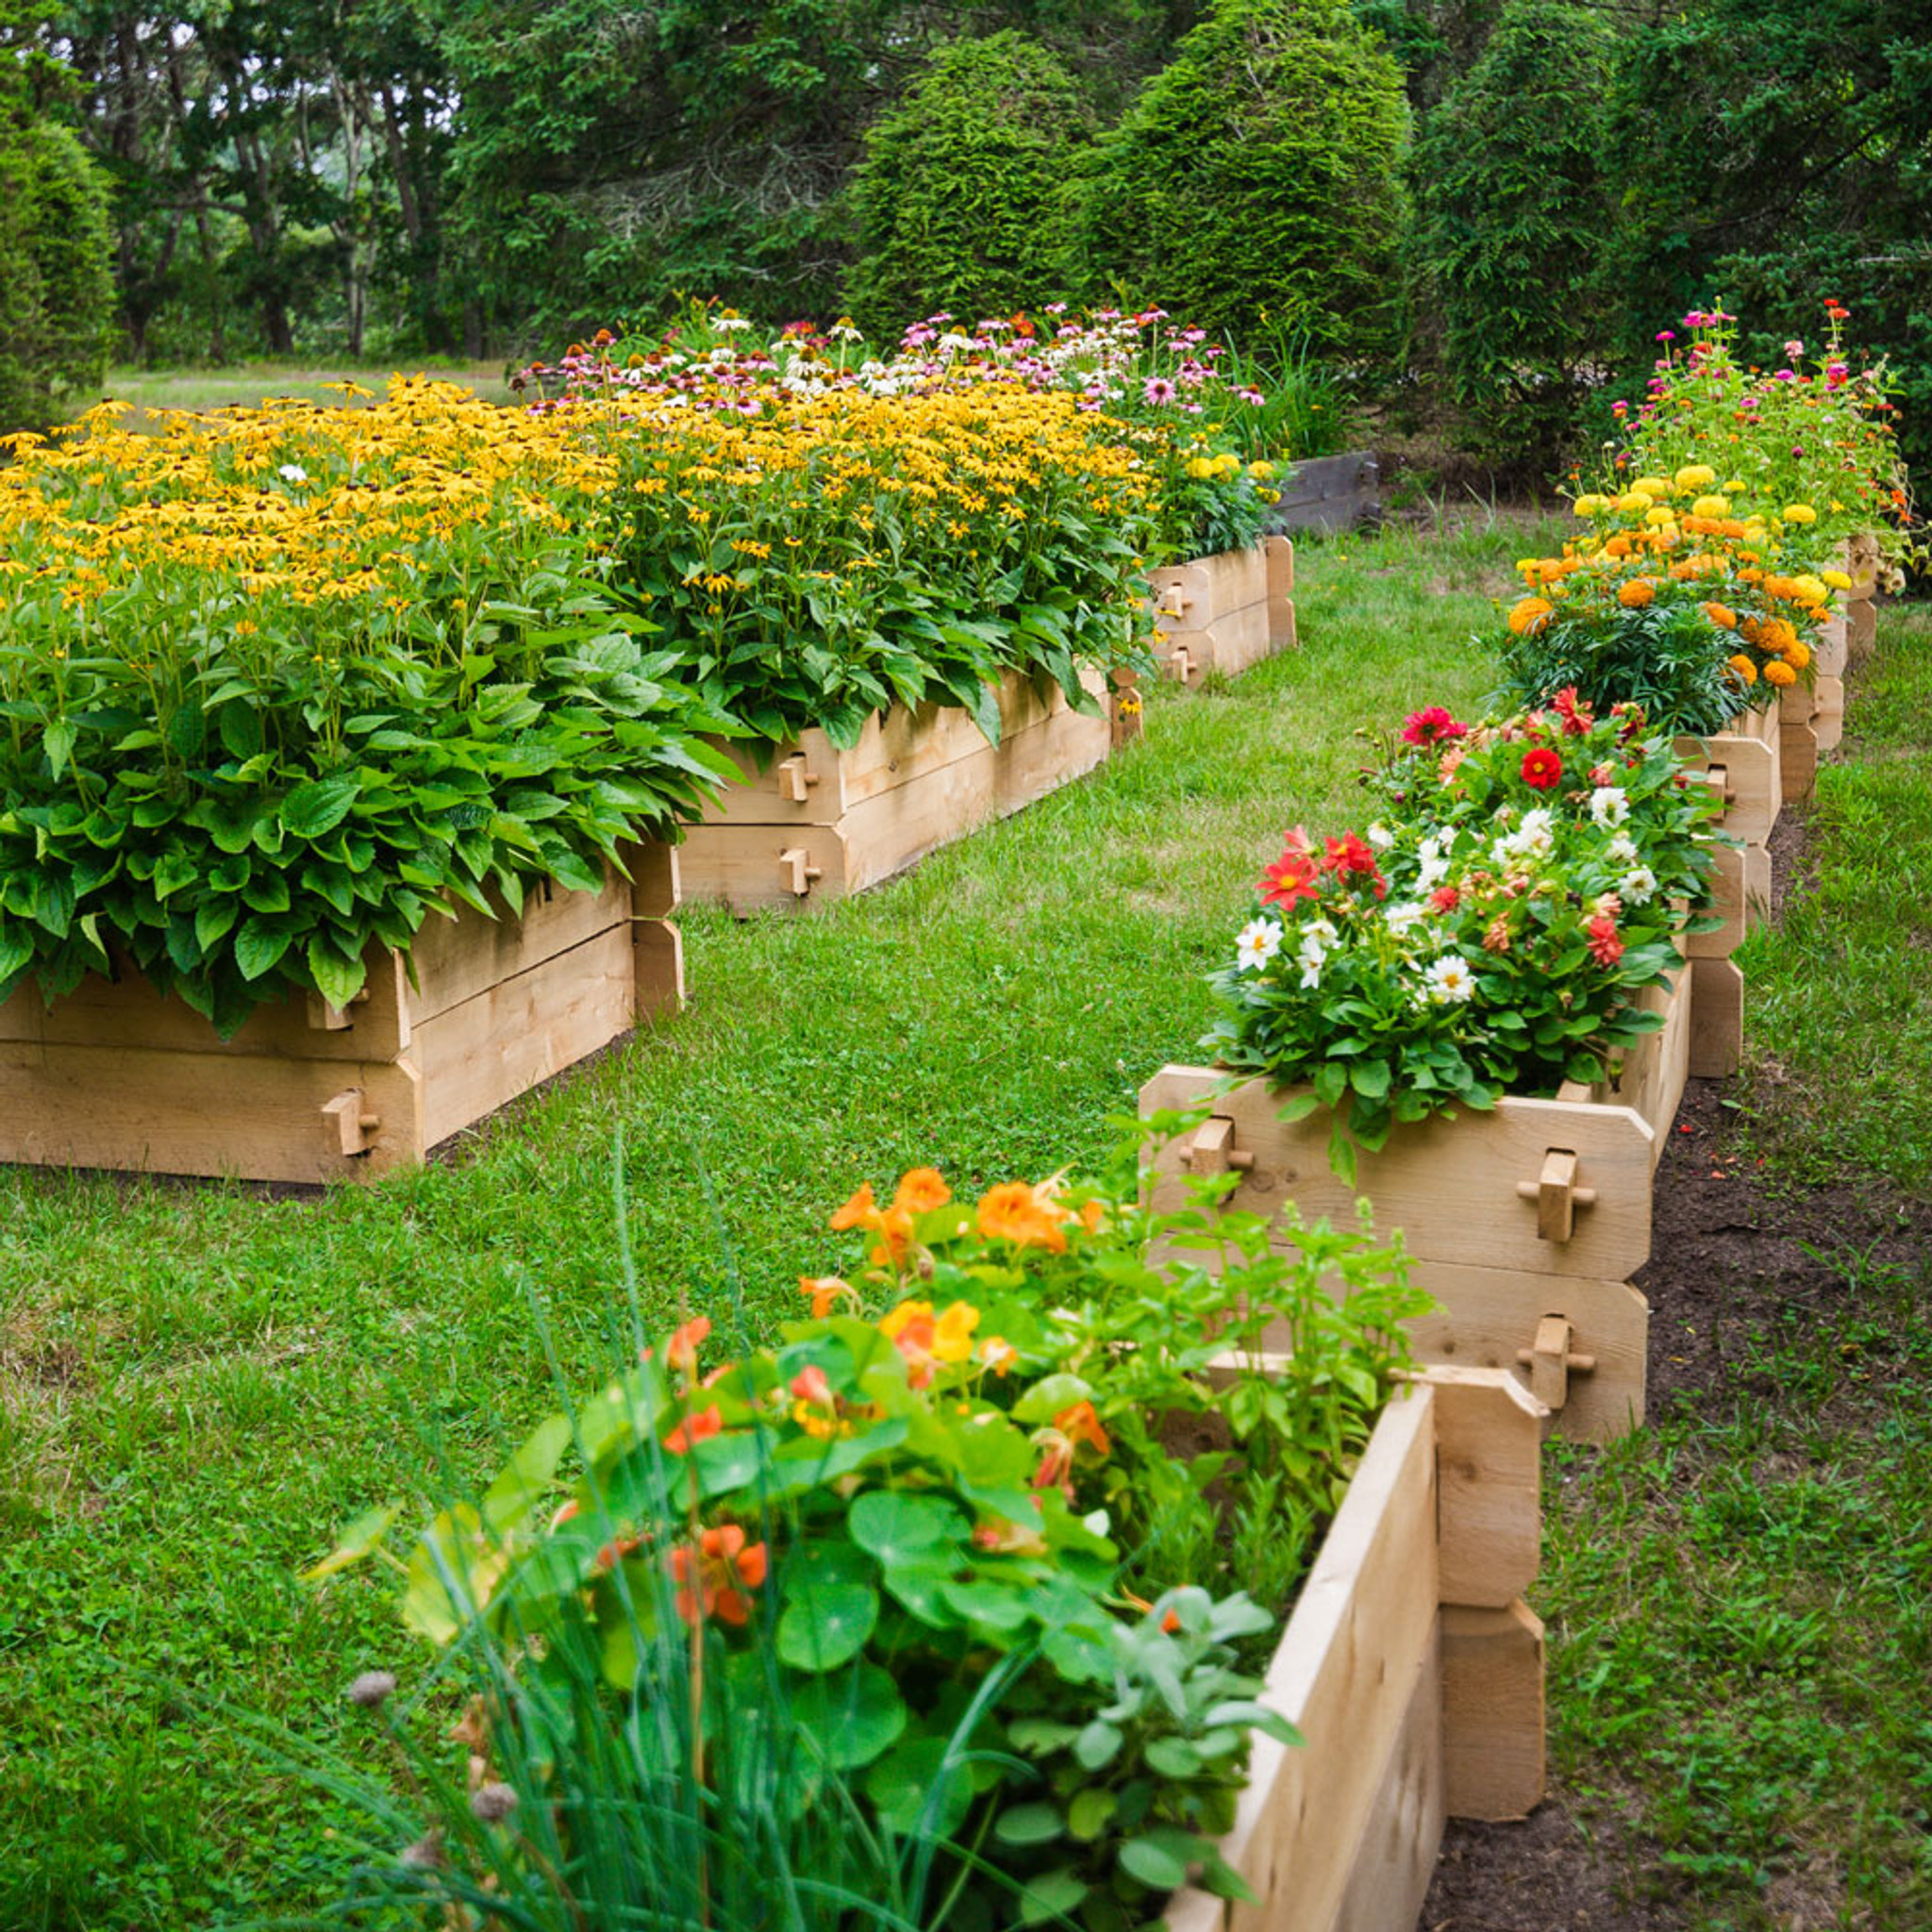 Enclosed Bed Google Search: Farmstead Raised Garden Bed